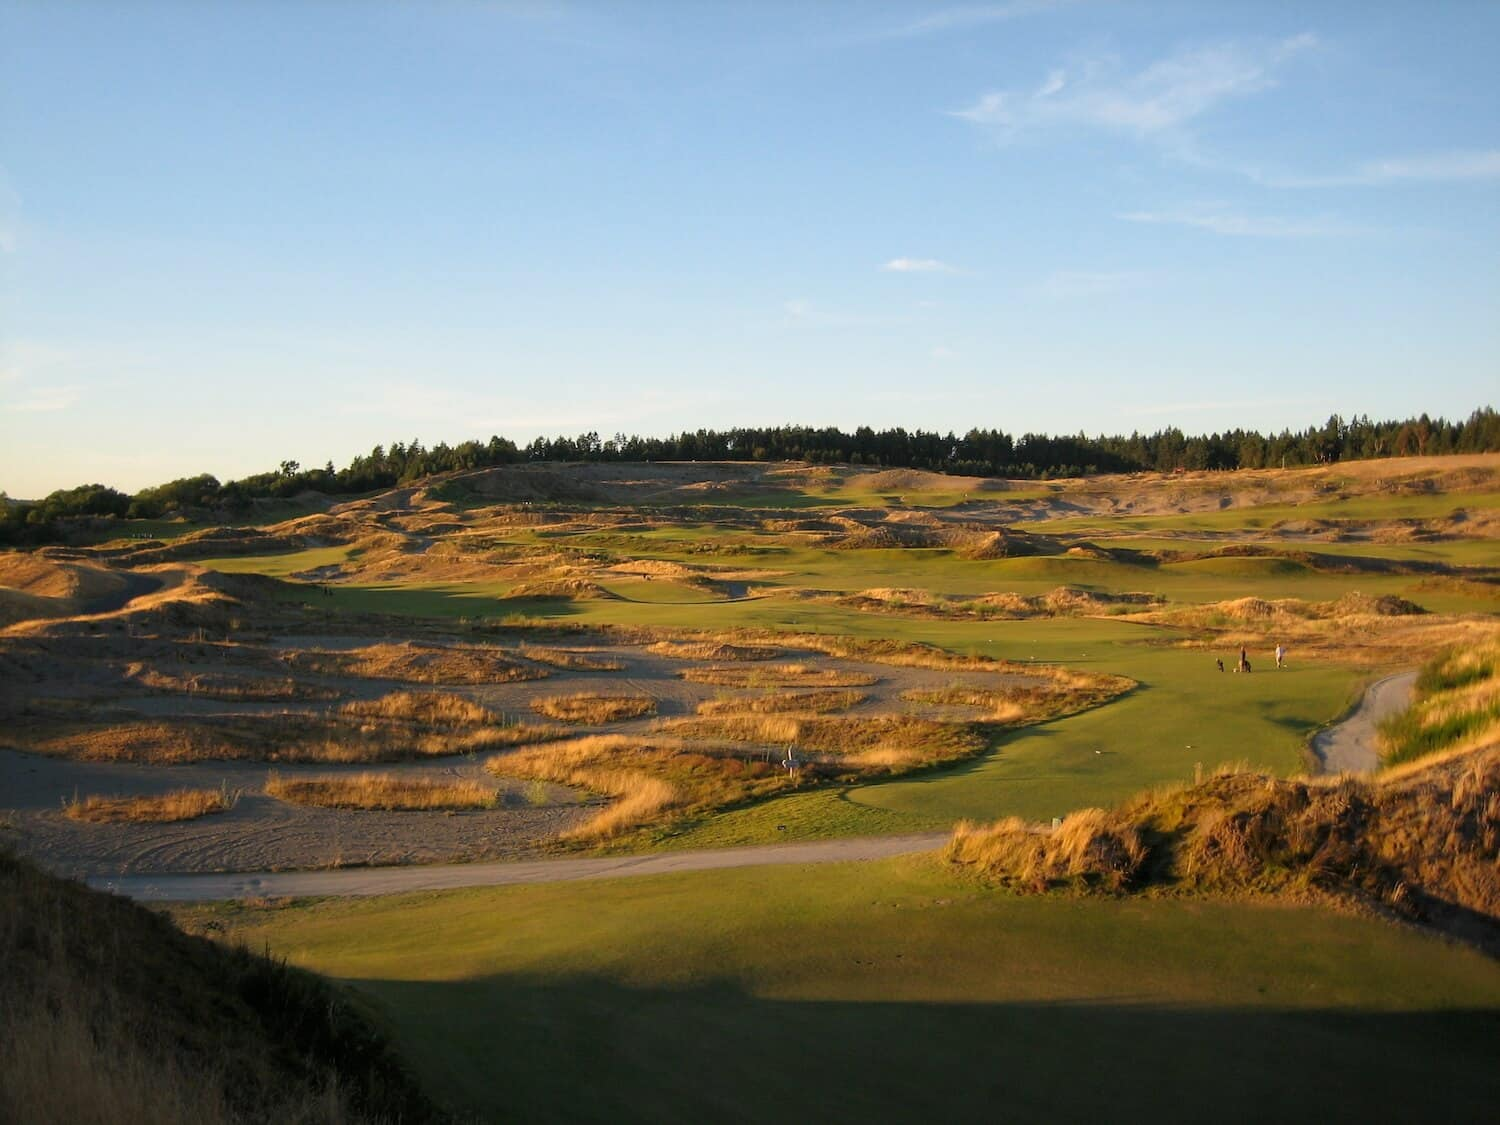 The U.S. Open May Return to Chambers Bay